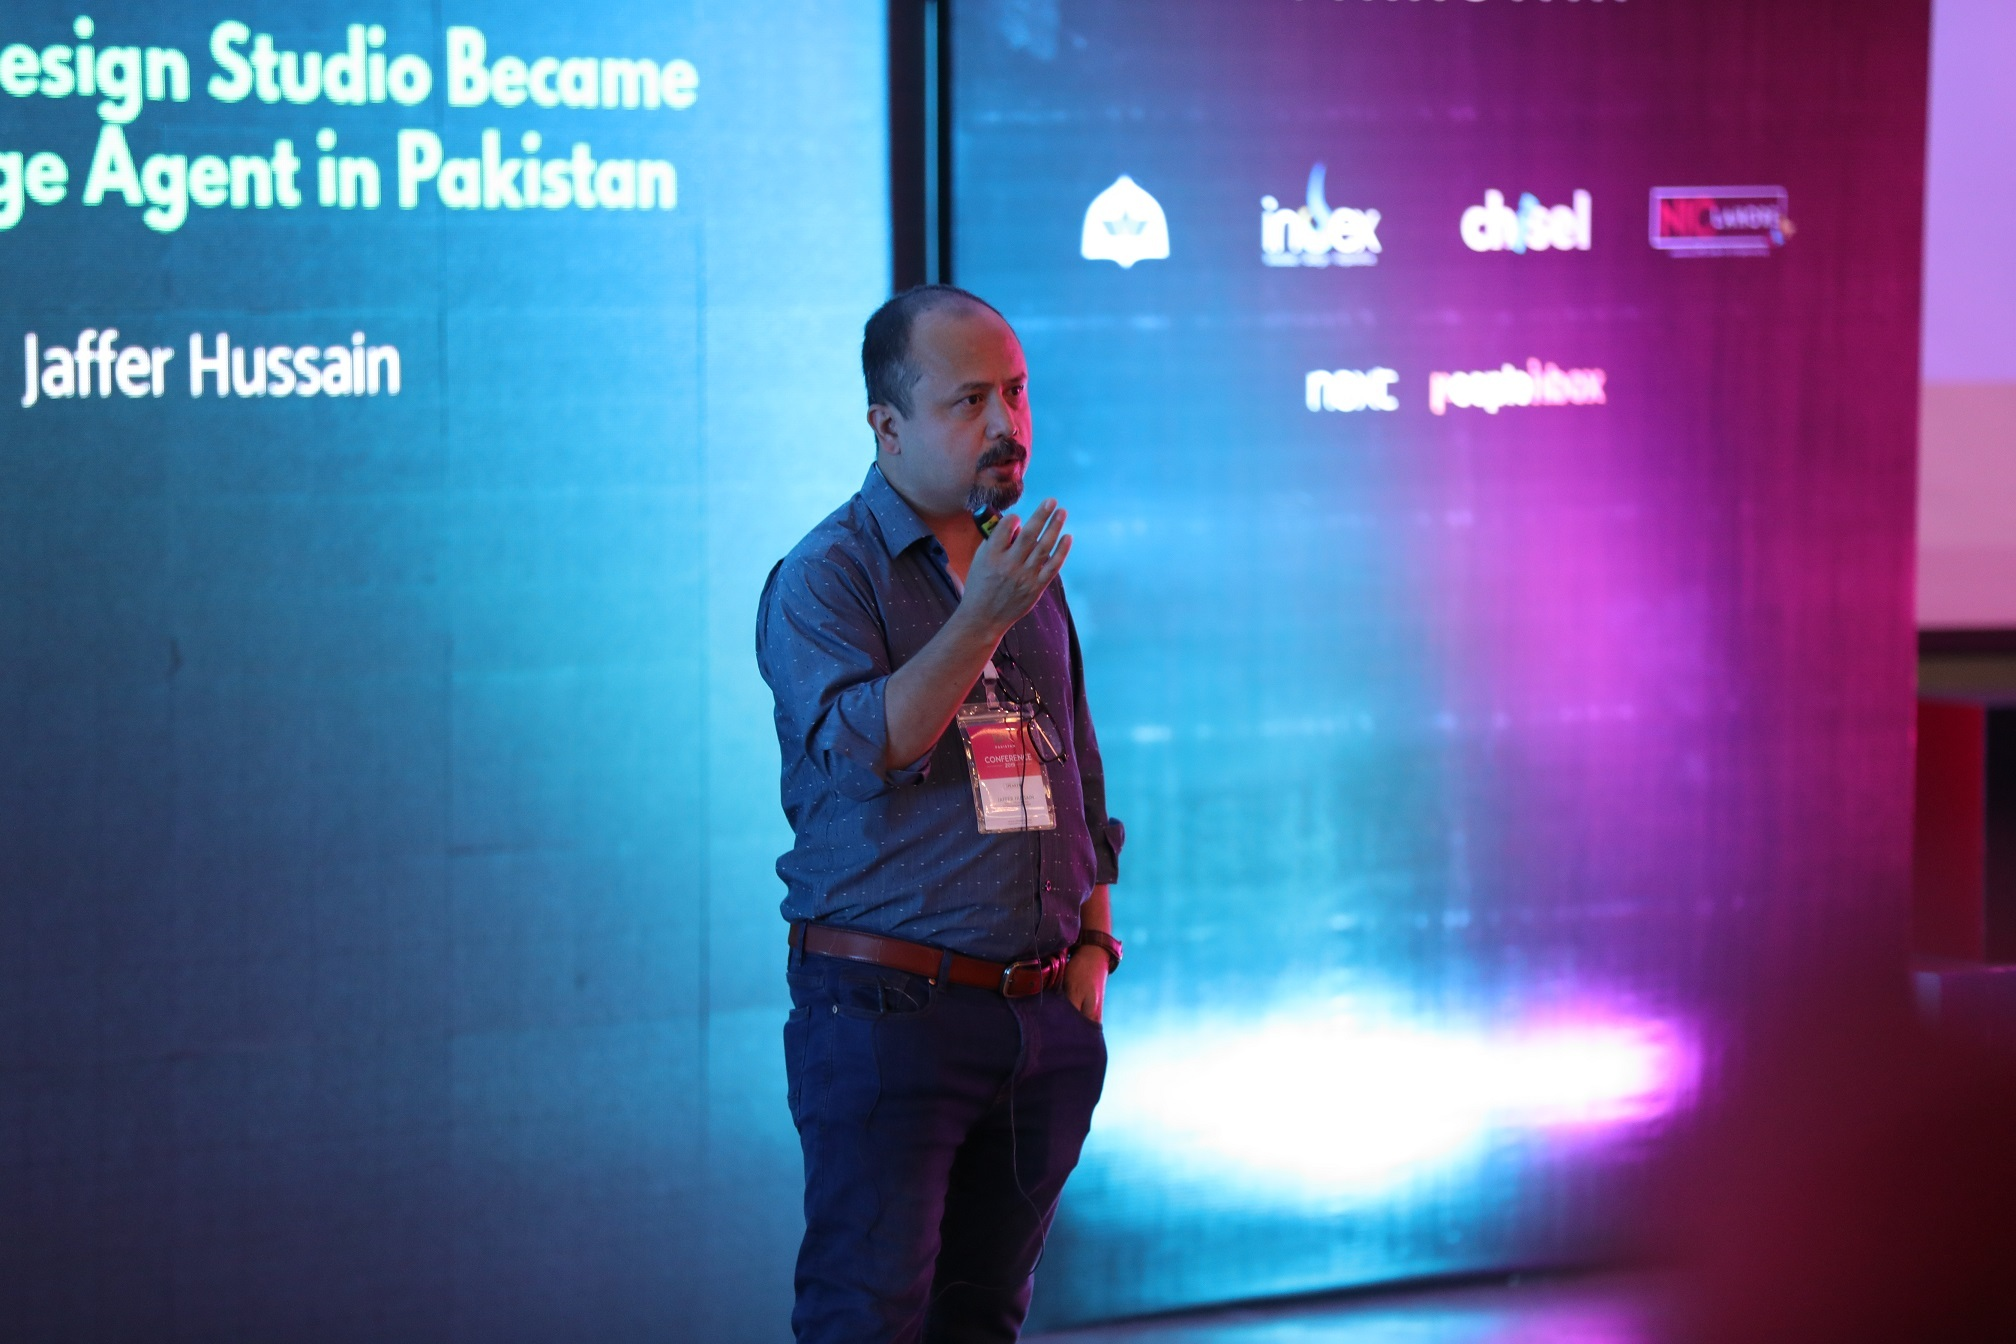 Jaffar Hussain discussing about How a Design Studio Became a Change Agent in Pakistan at UX Pakistan